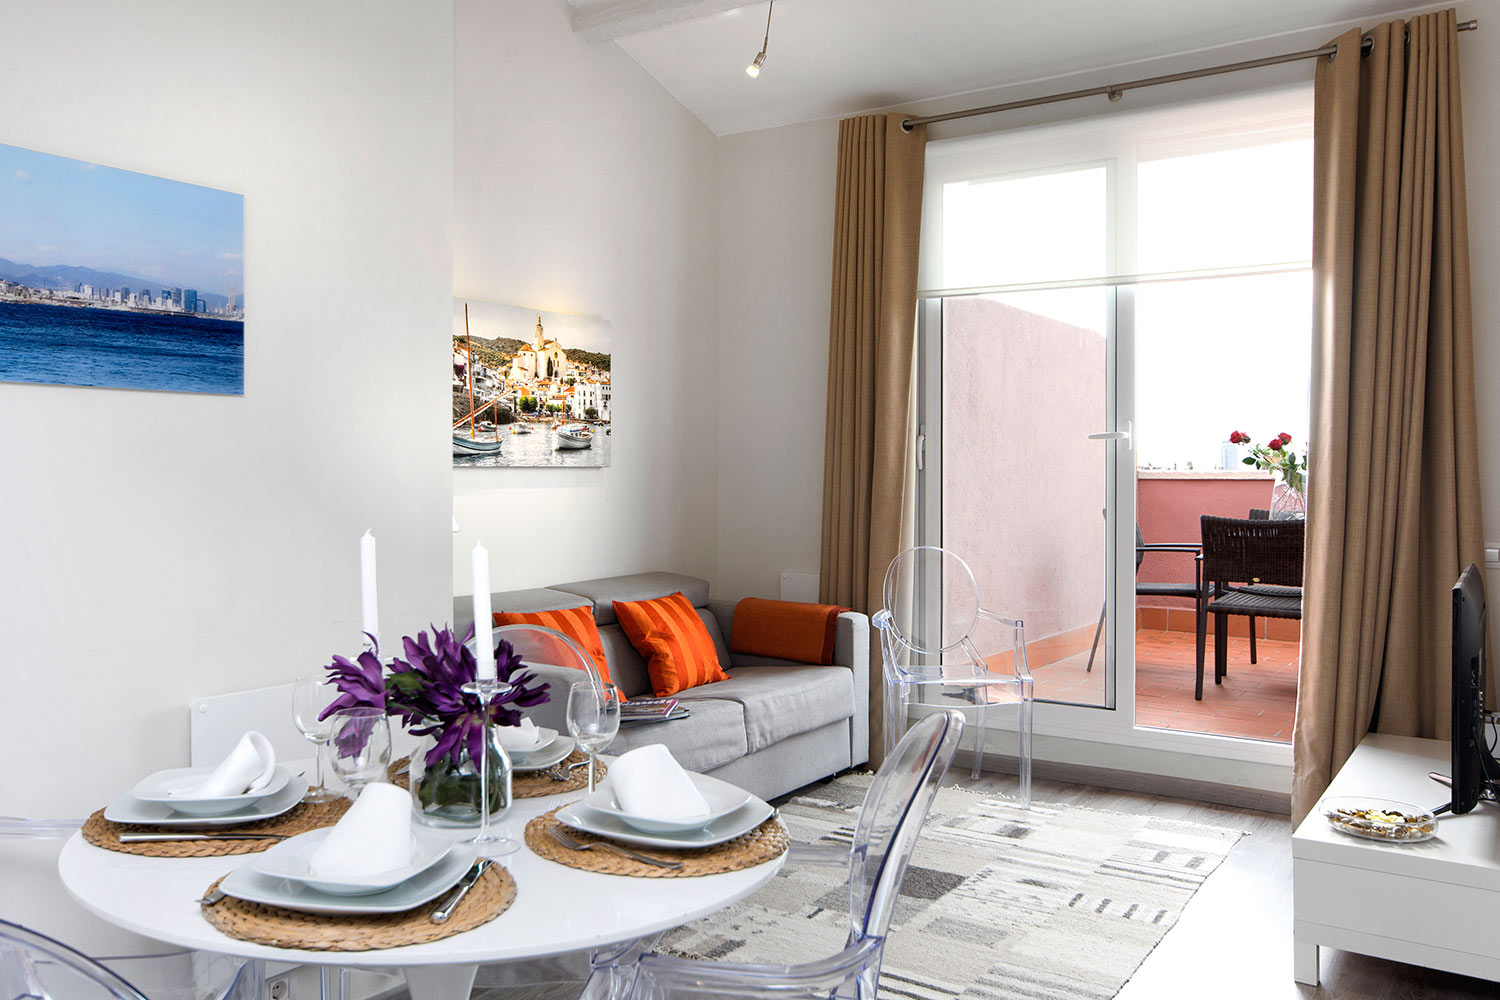 2 Bedrooms Penthouse Apartment for rent in Barcelona